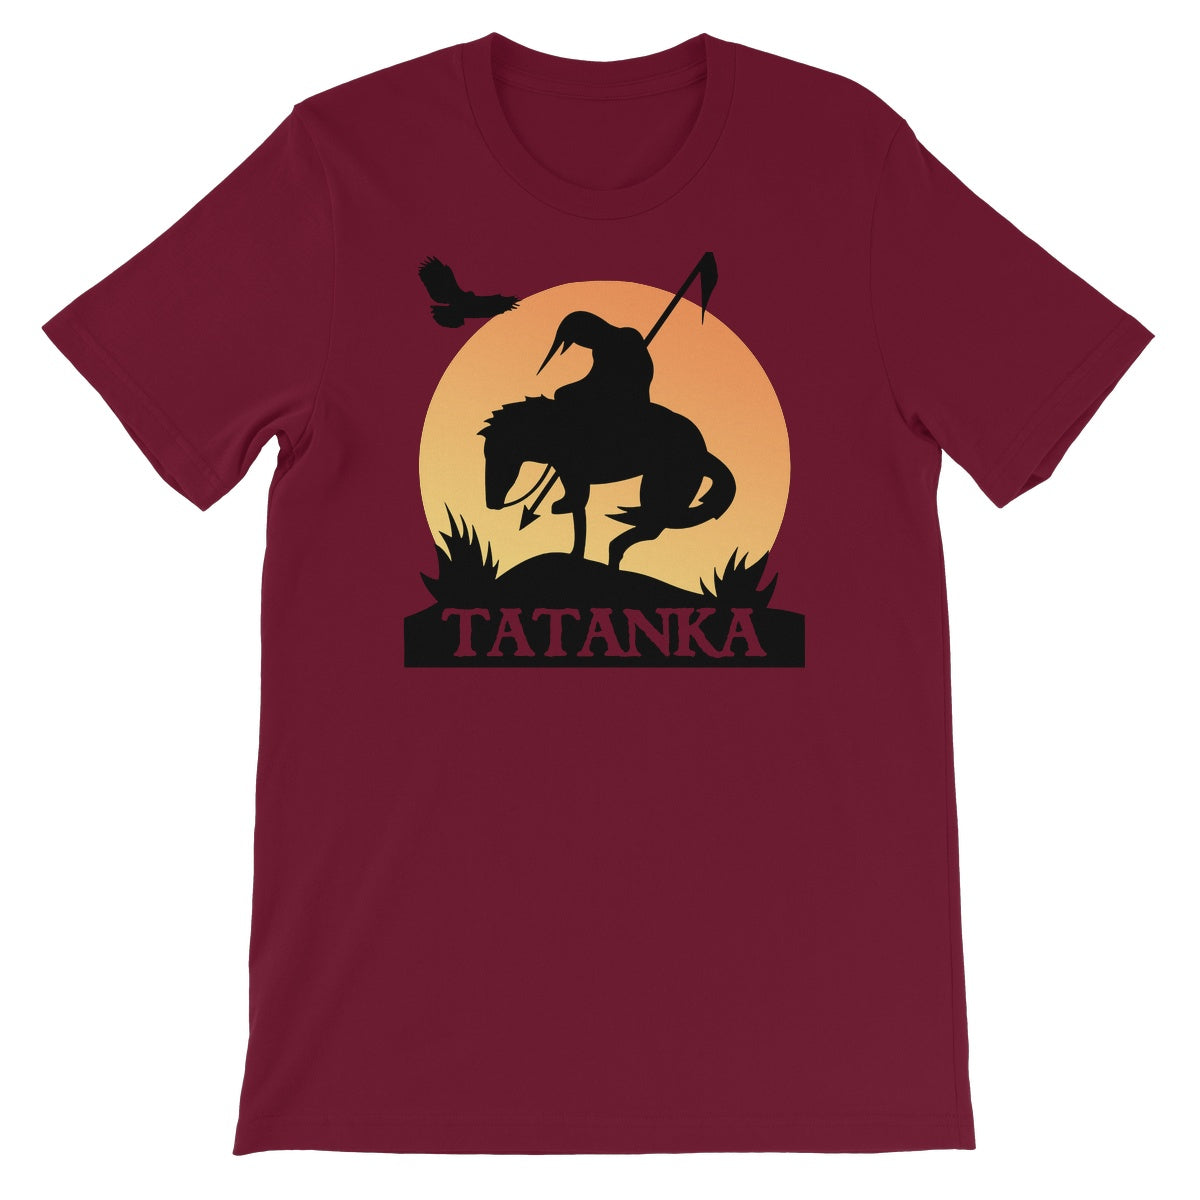 Tatanka End Of The Trail Unisex Short Sleeve T-Shirt